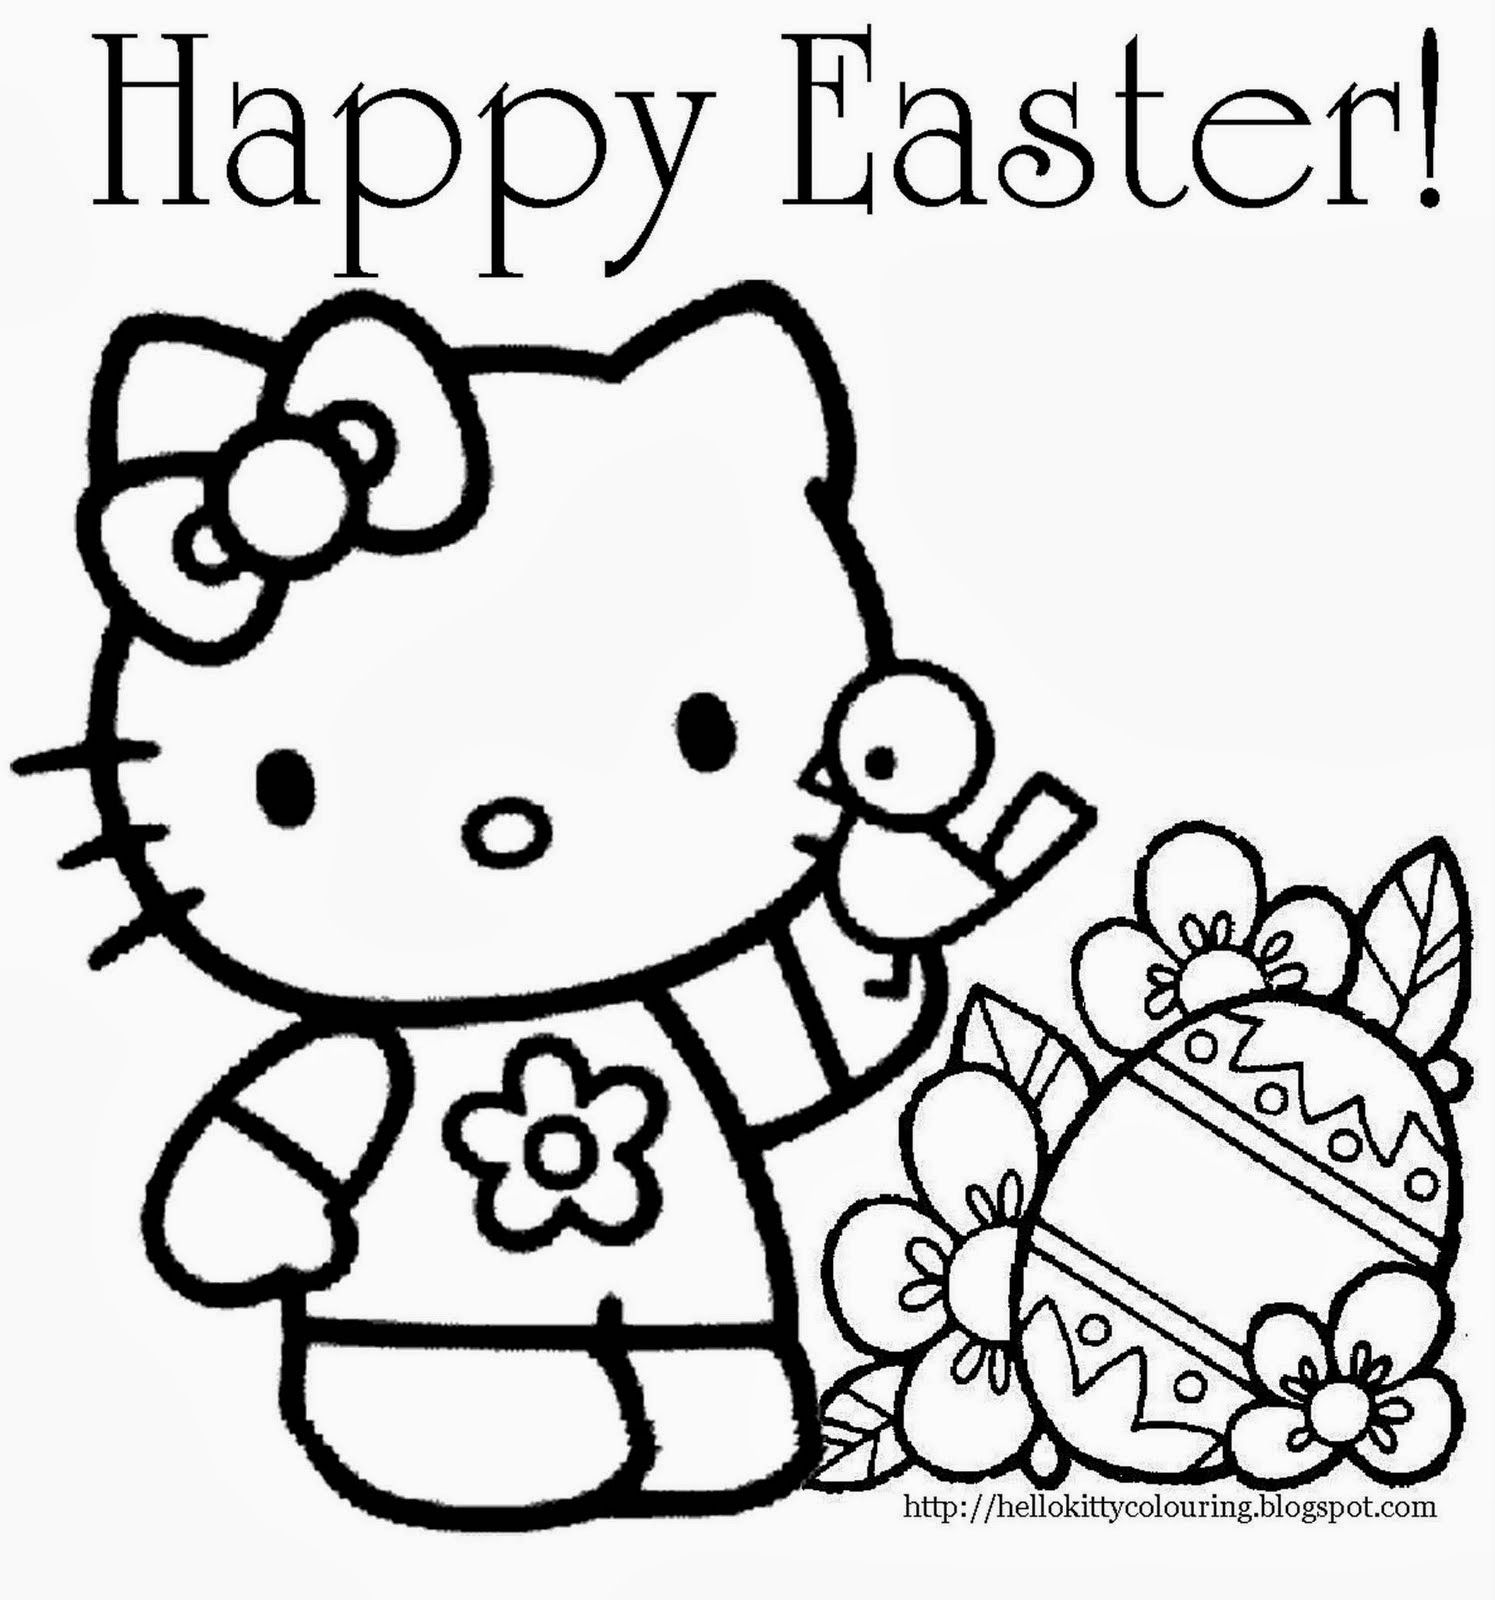 Happy Easter For Hello Kitty Coloring Pages Kids Printable